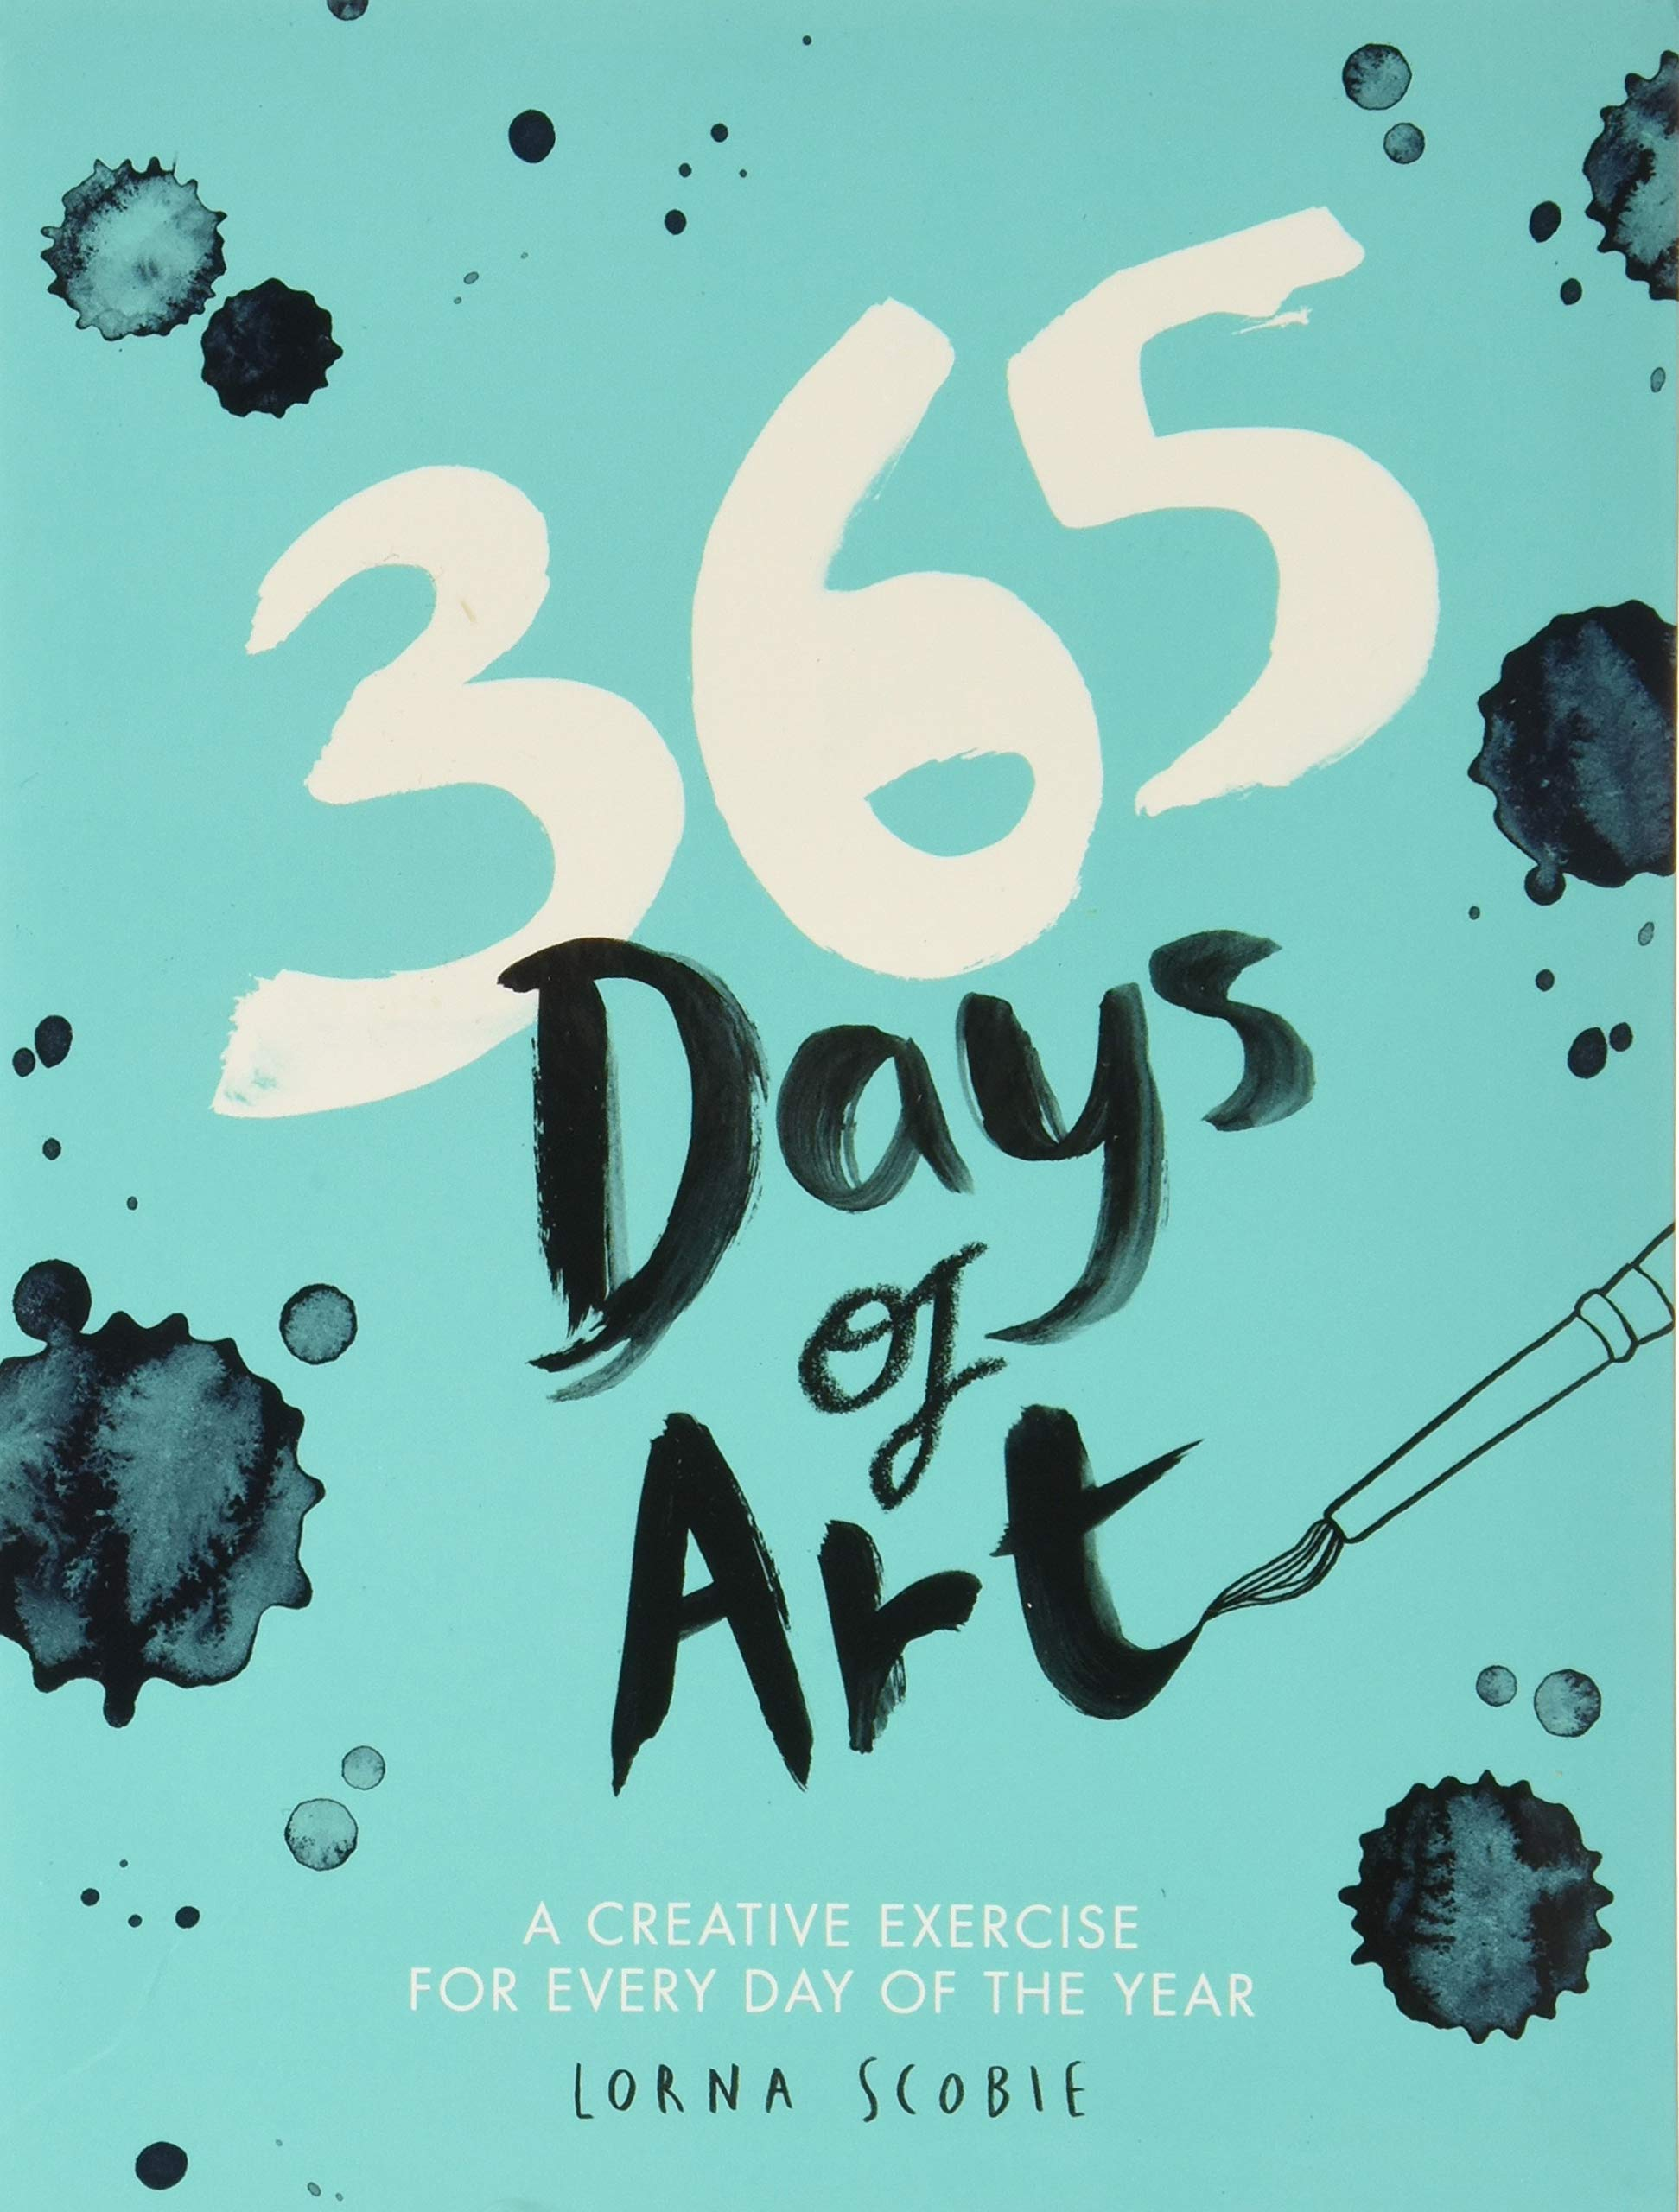 81IbfUXe0uL - 365 Days of Art: A Creative Exercise for Every Day of the Year